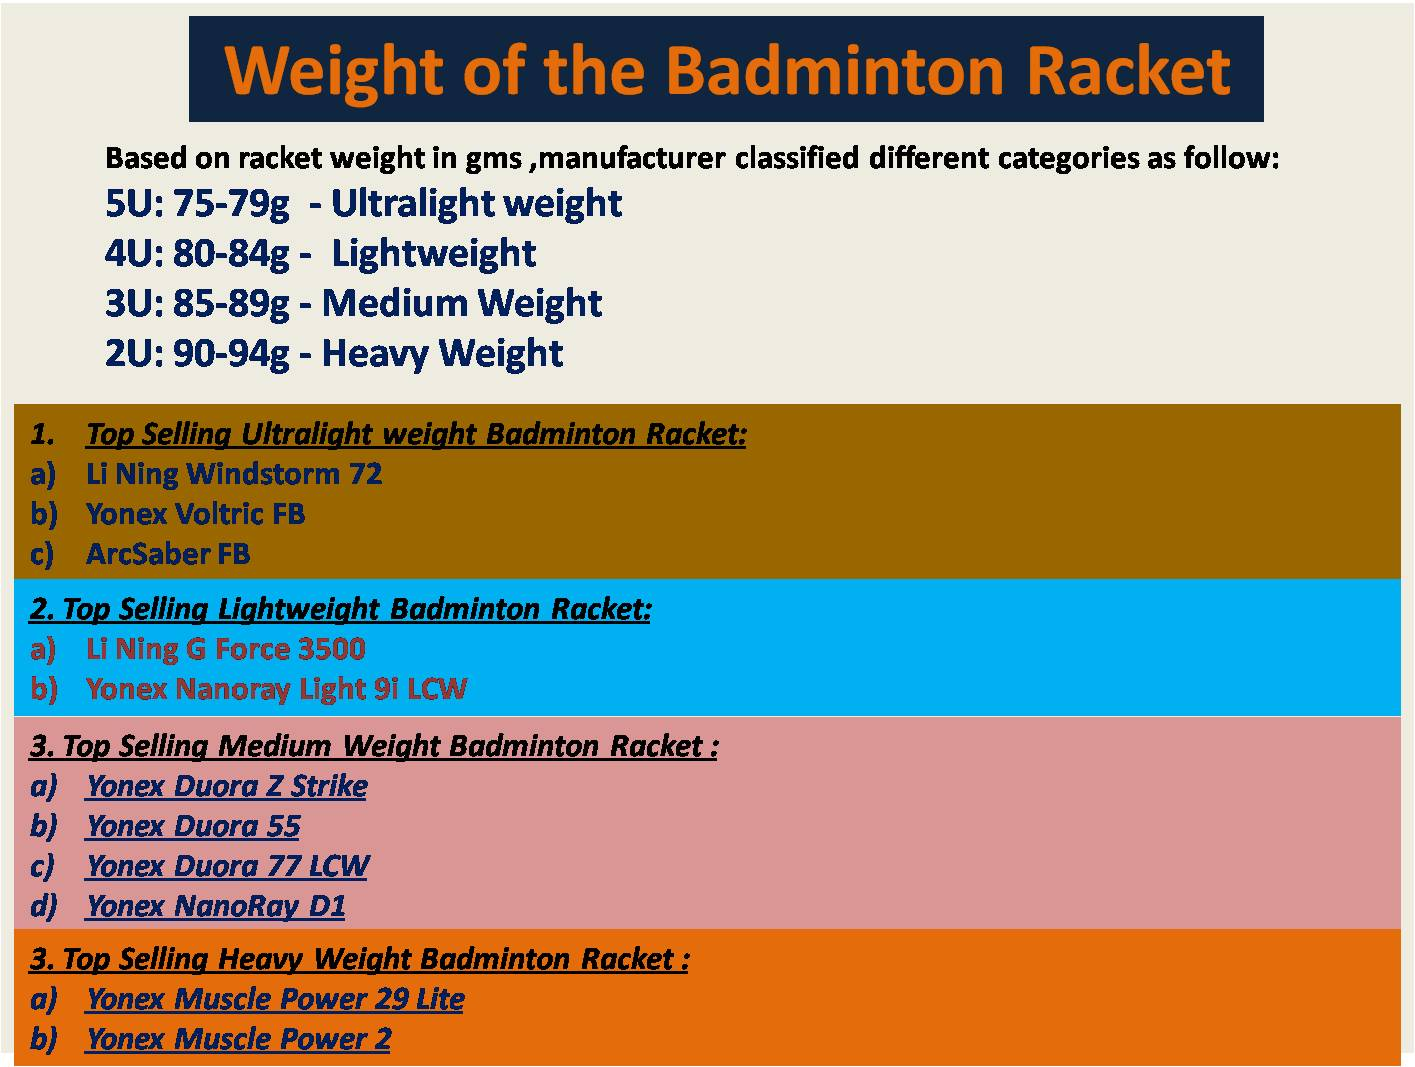 Weight of the Badminton Racket